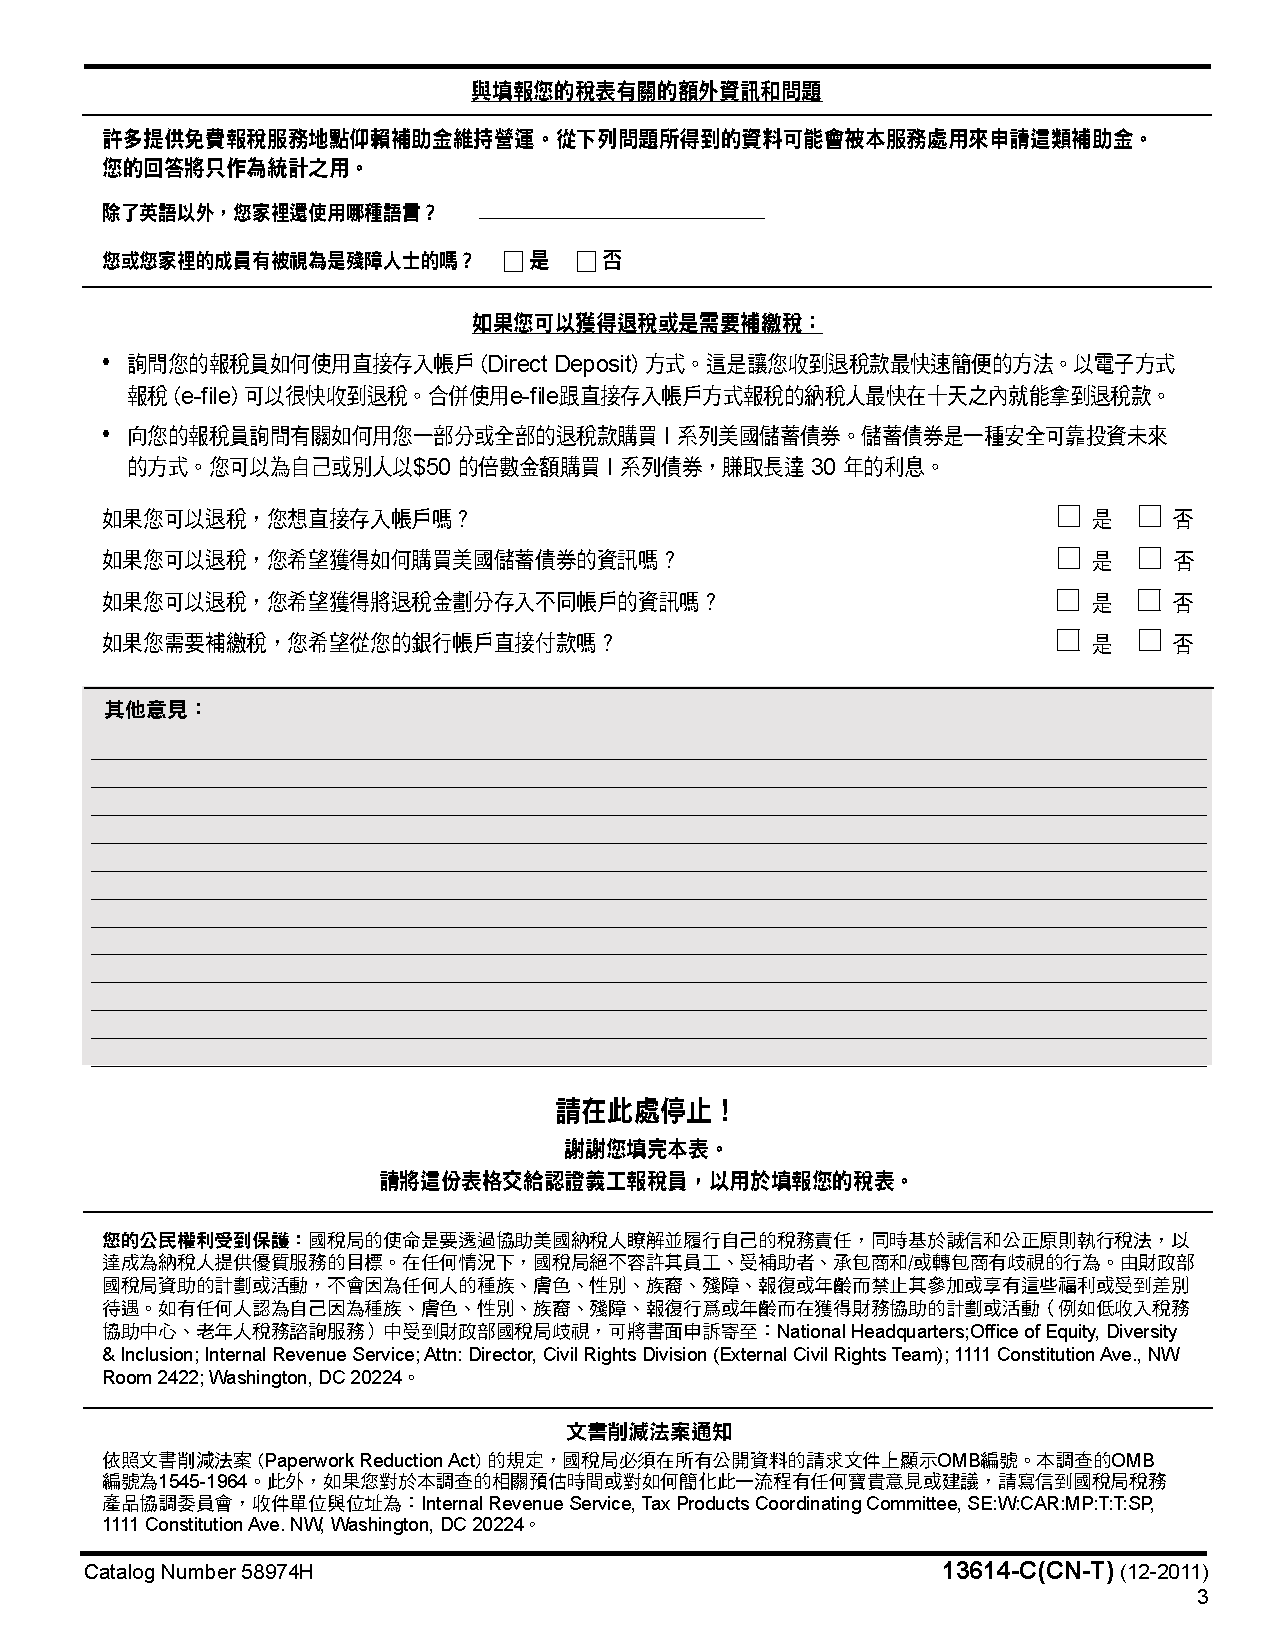 Form 13614-C (CN-T) Intake/Interview & Quality Review ...